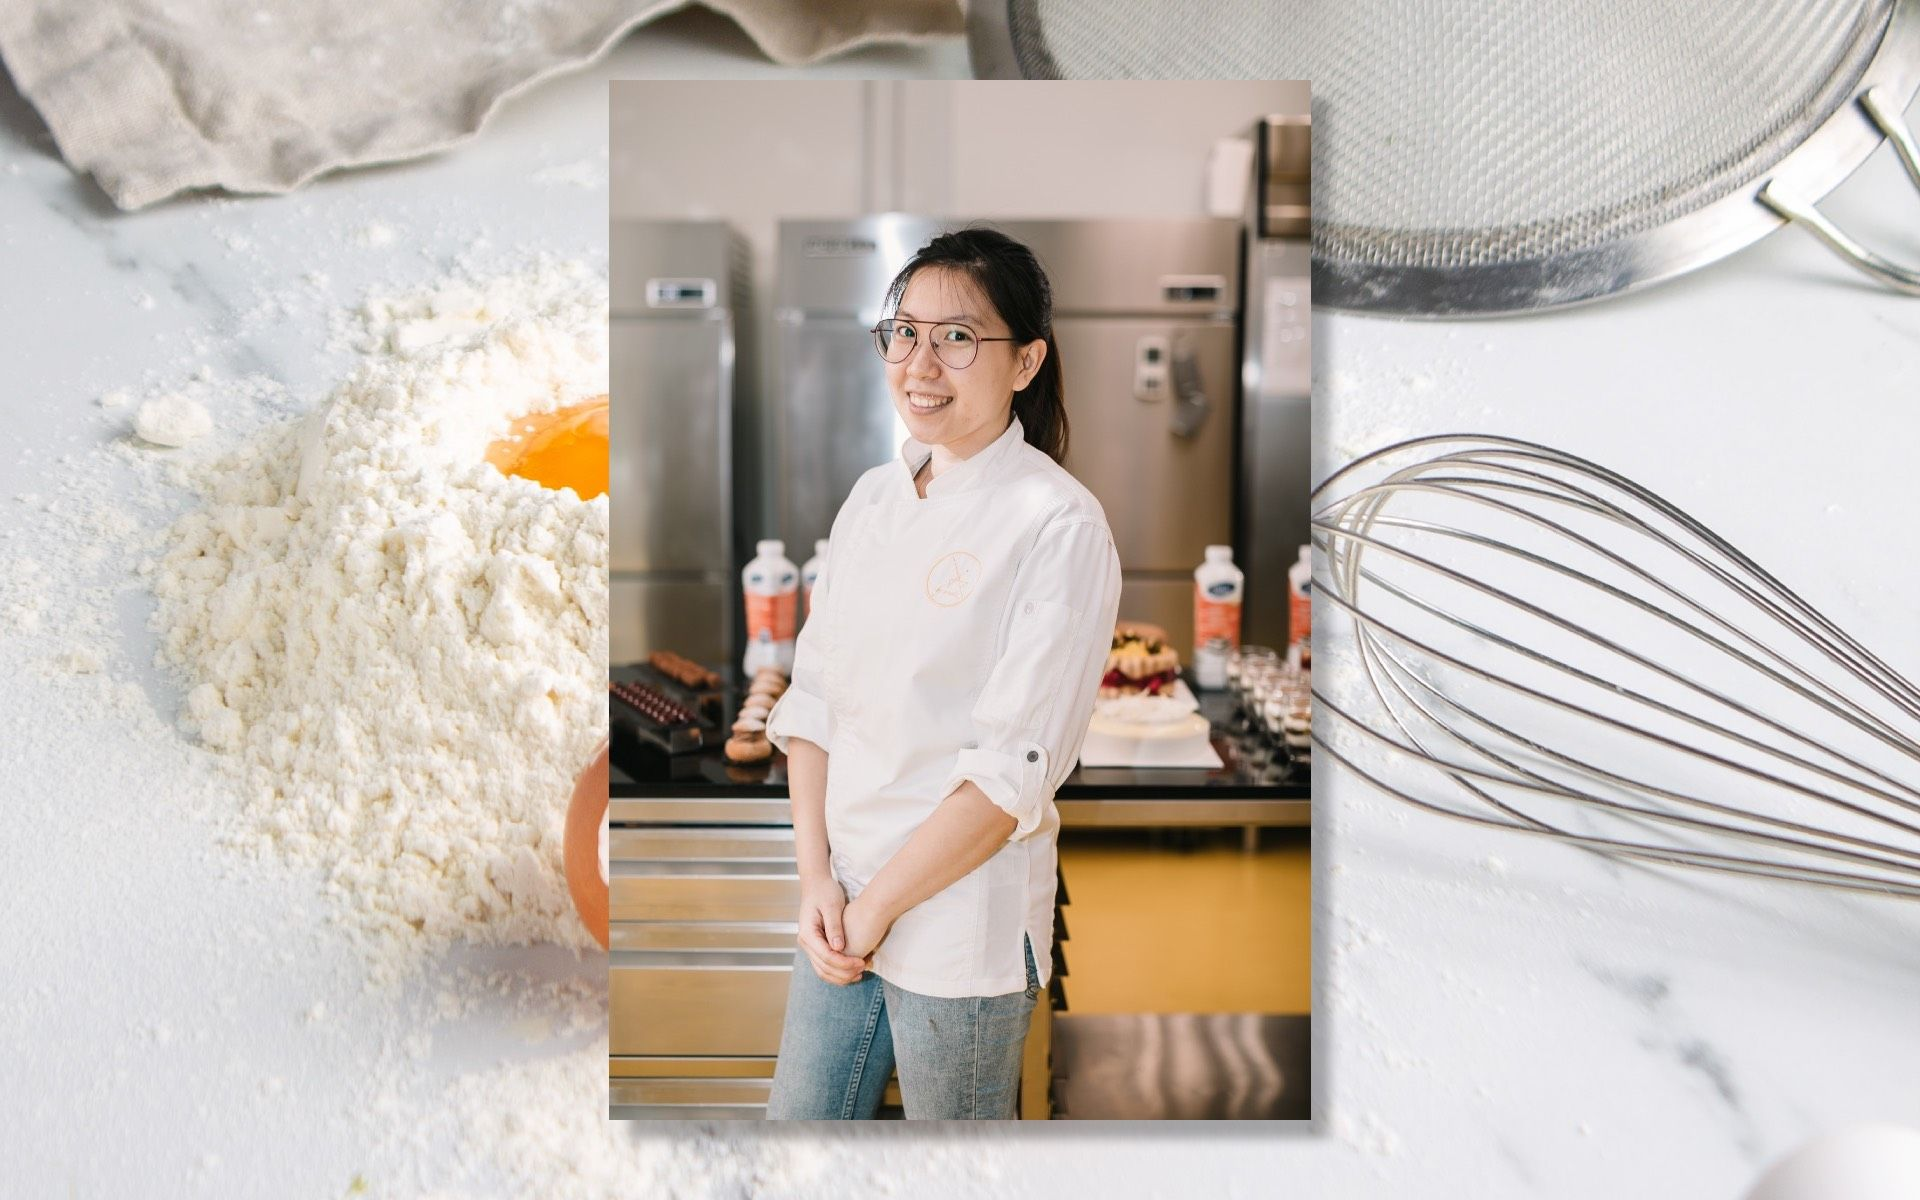 Xiao-Ly Koh Of Xiao By Crustz On Spreading Joy Through Desserts